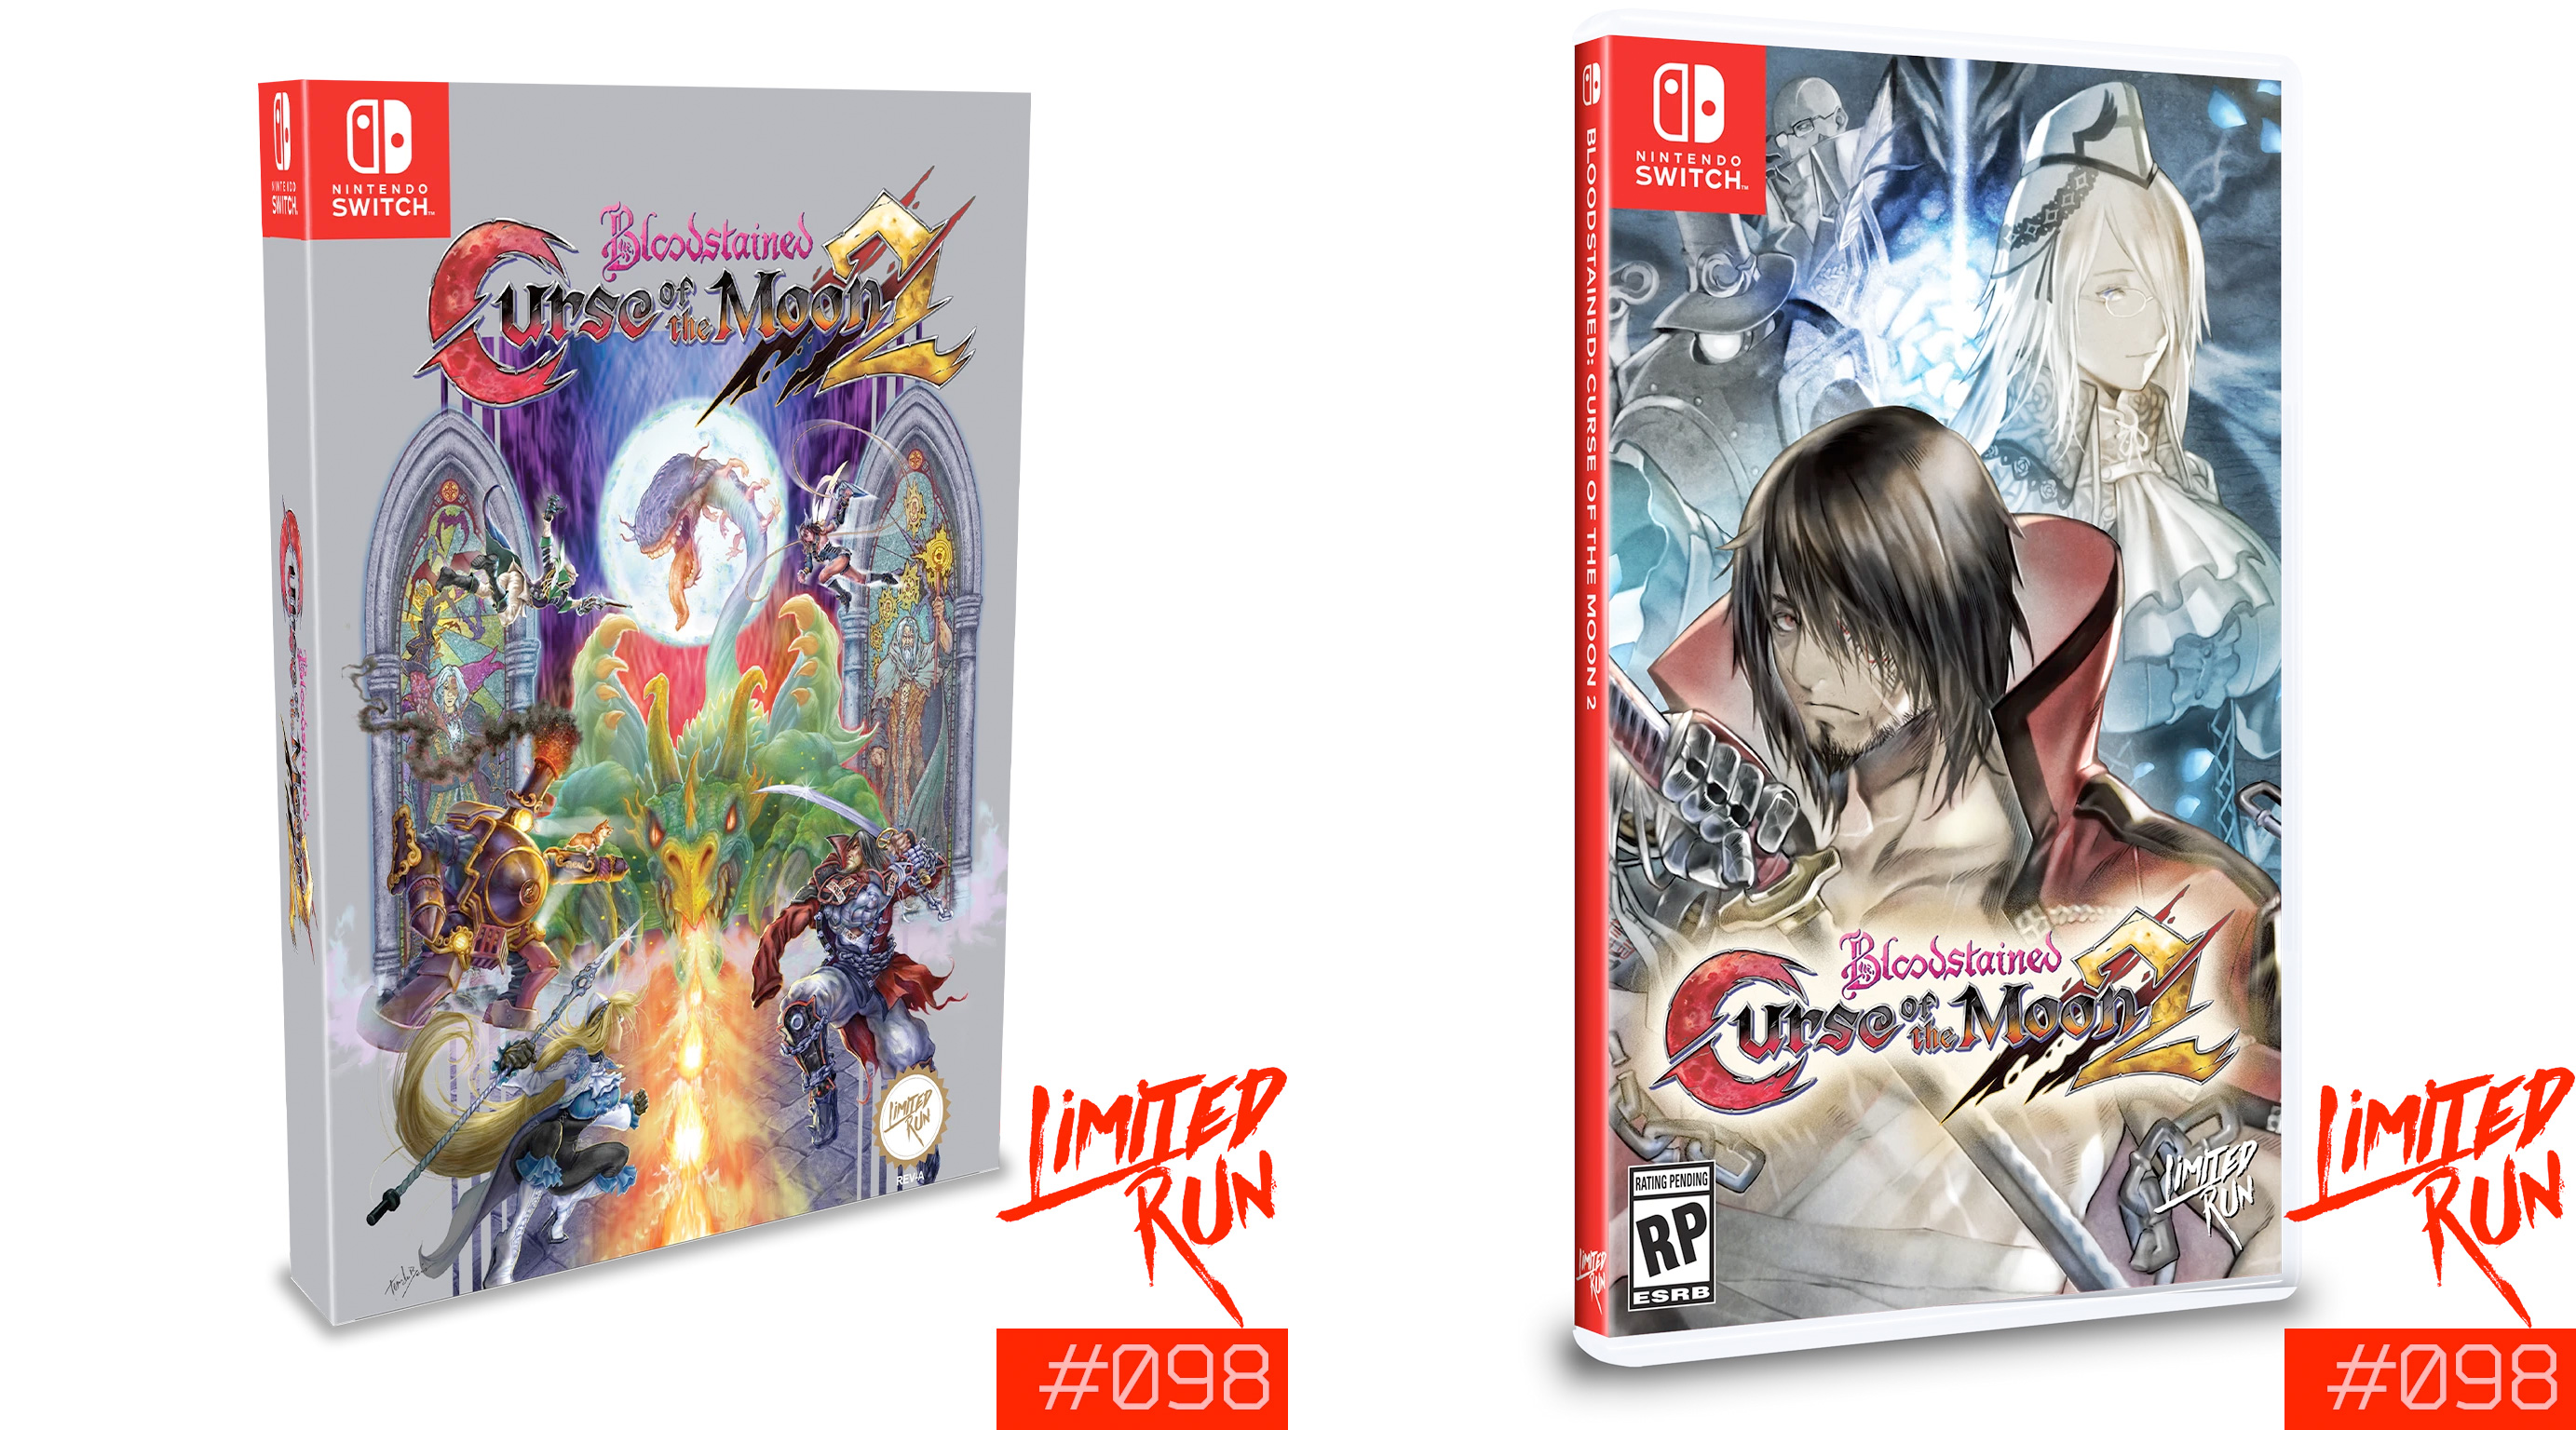 Bloodstained: Curse of the Moon 2 got a classic Konami-style cover for its Limited Run physical edition screenshot